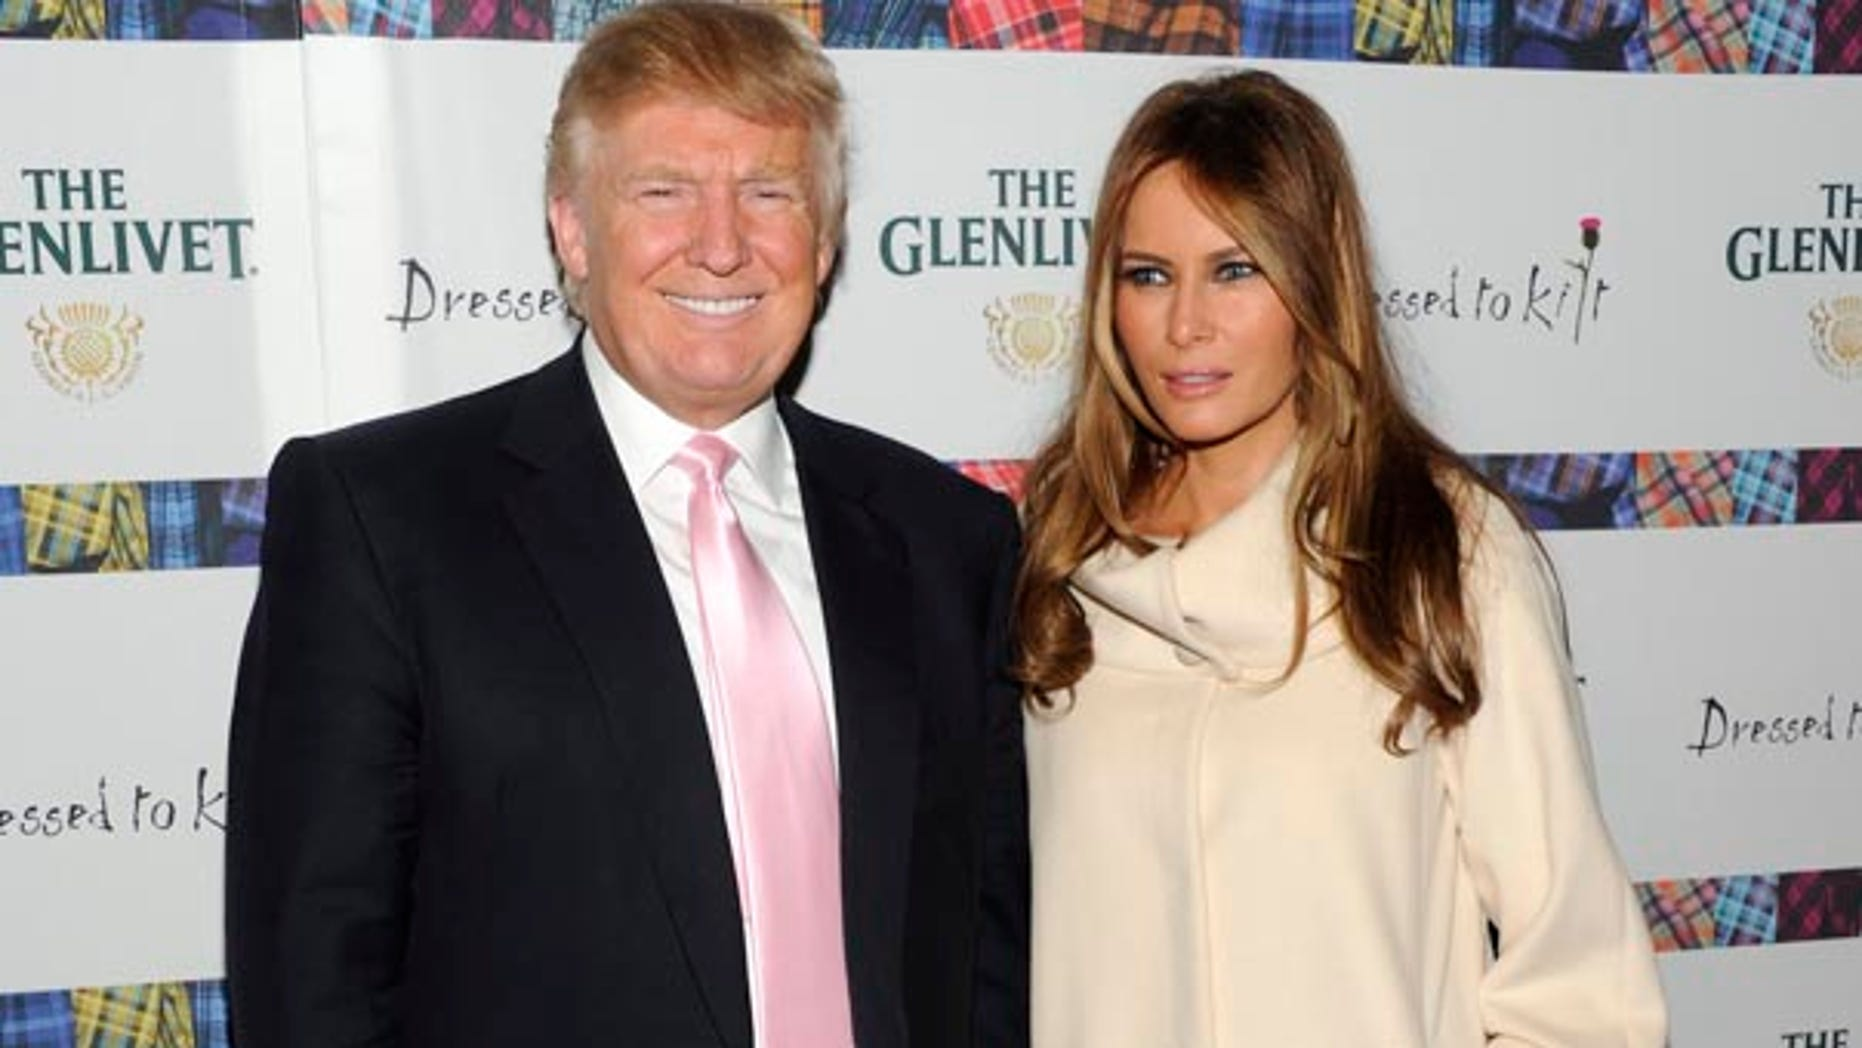 If Donald Trump became president, Melania Trump would become the first foreign-born first lady since Louisa Adams, wife of John Quincy Adams, the sixth U.S. president who served from 1825-1829.